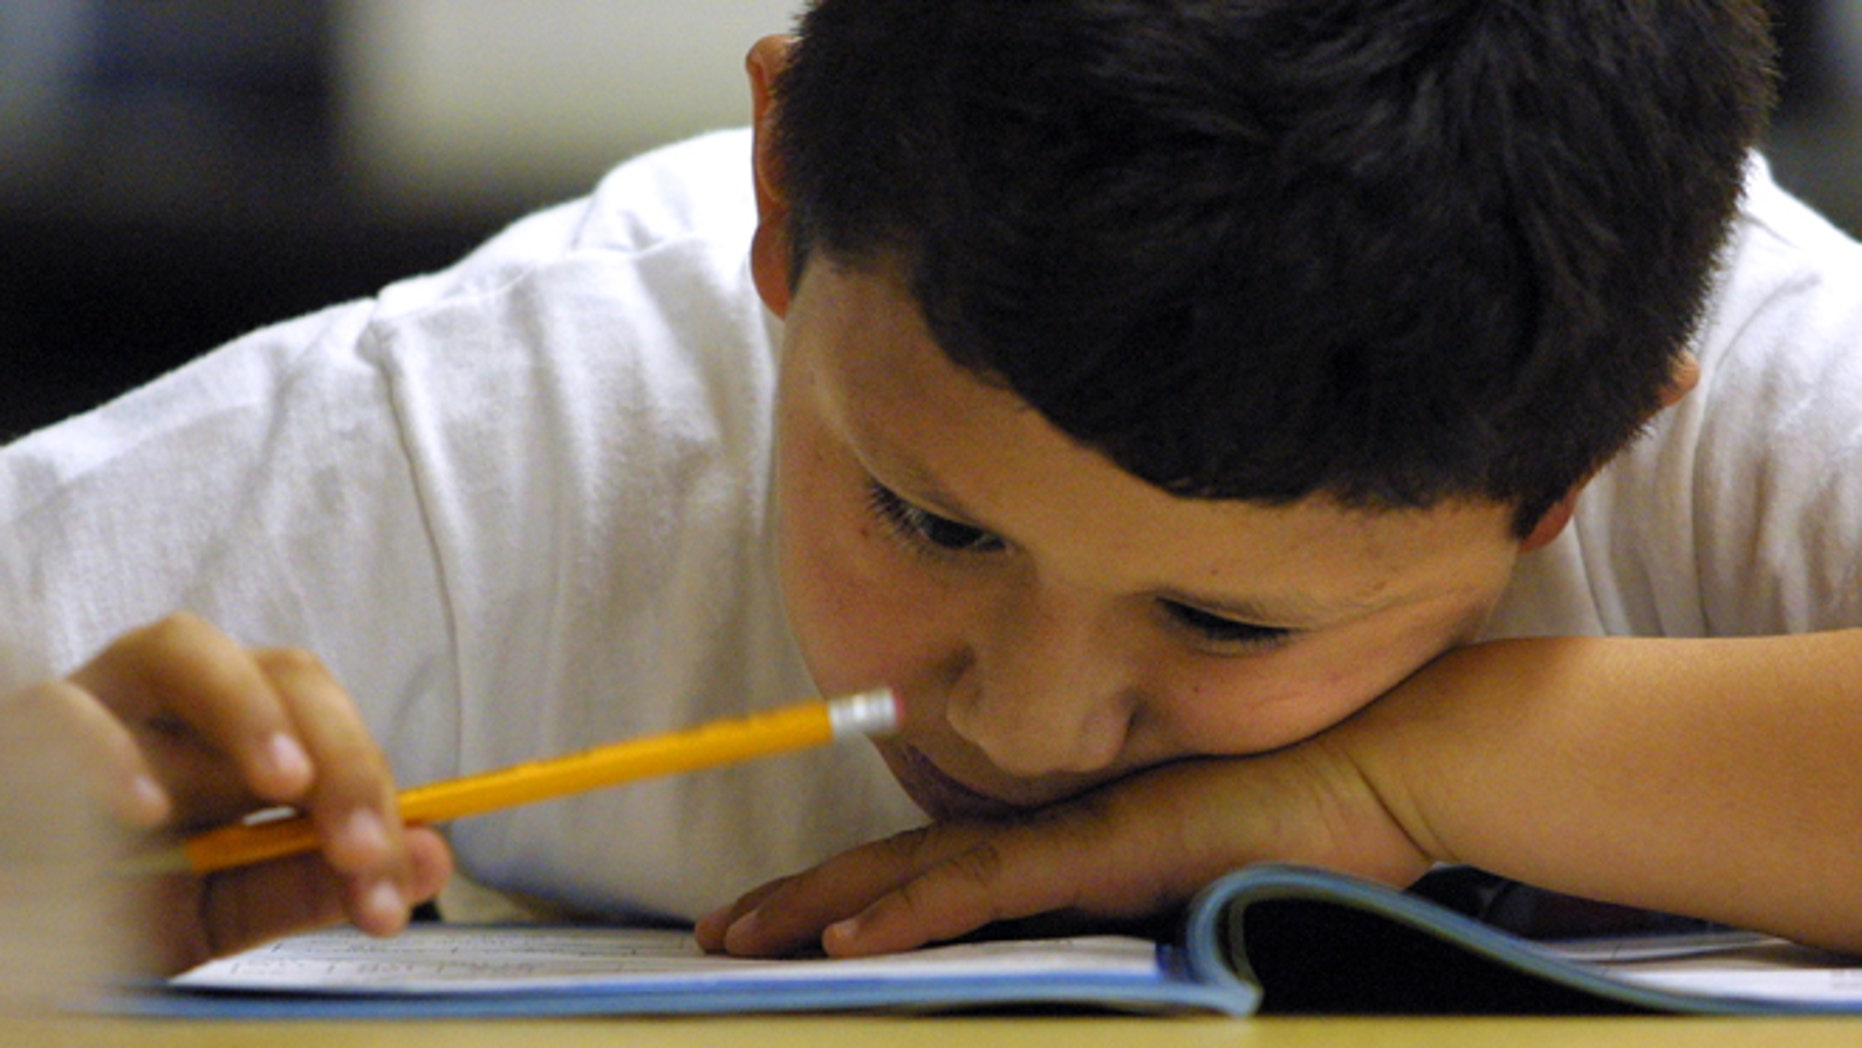 A young student in a second grade bilingual class looks closely at a math exam. (Photo by Tim Boyle/Getty Images)